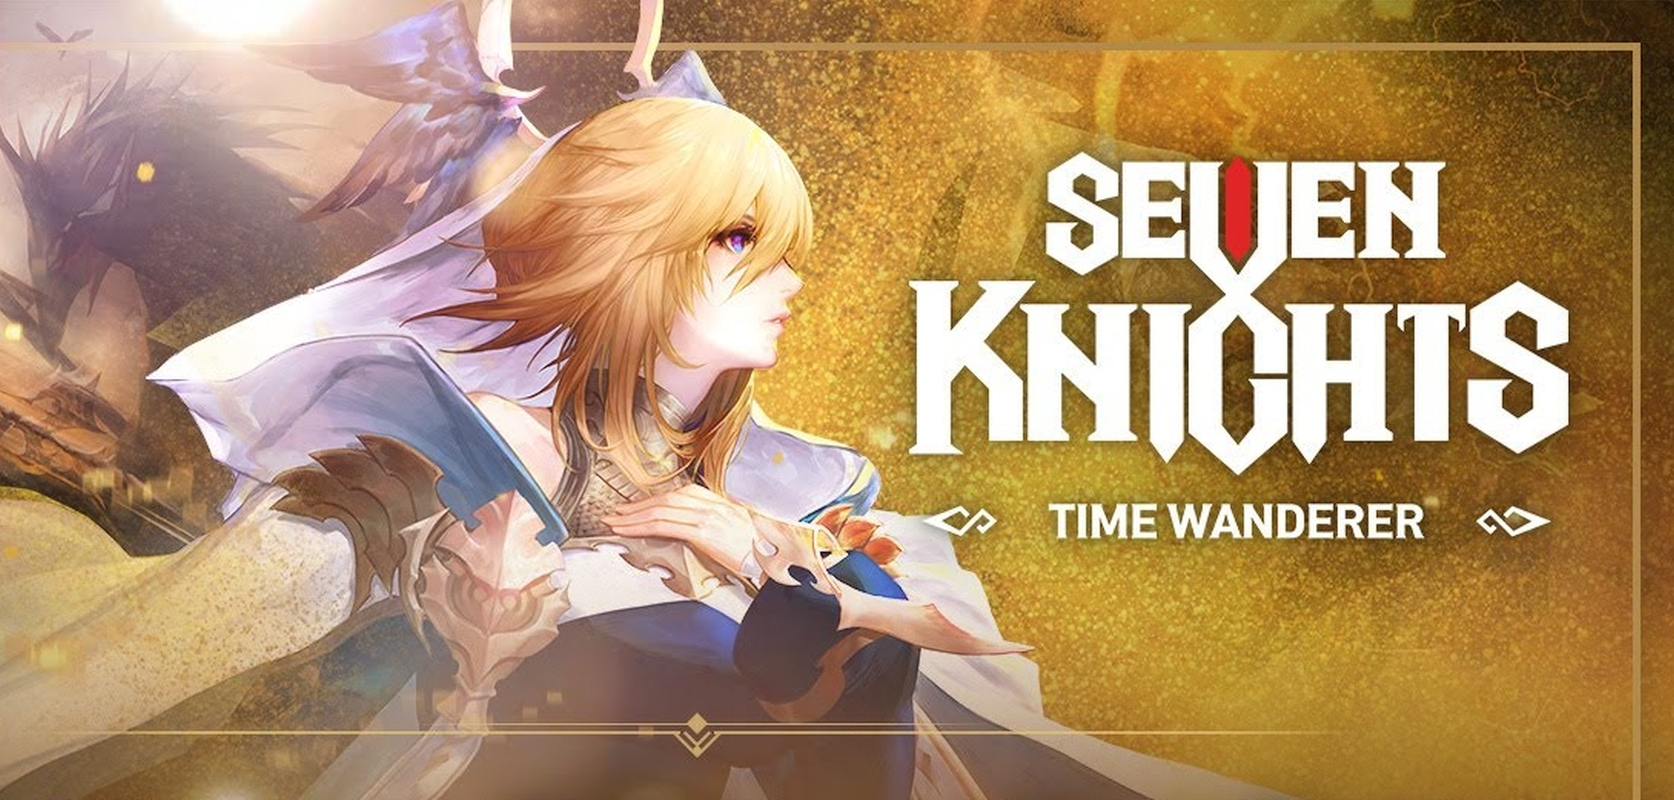 Seven Knights: Time Wanderer Announced For the Nintendo Switch